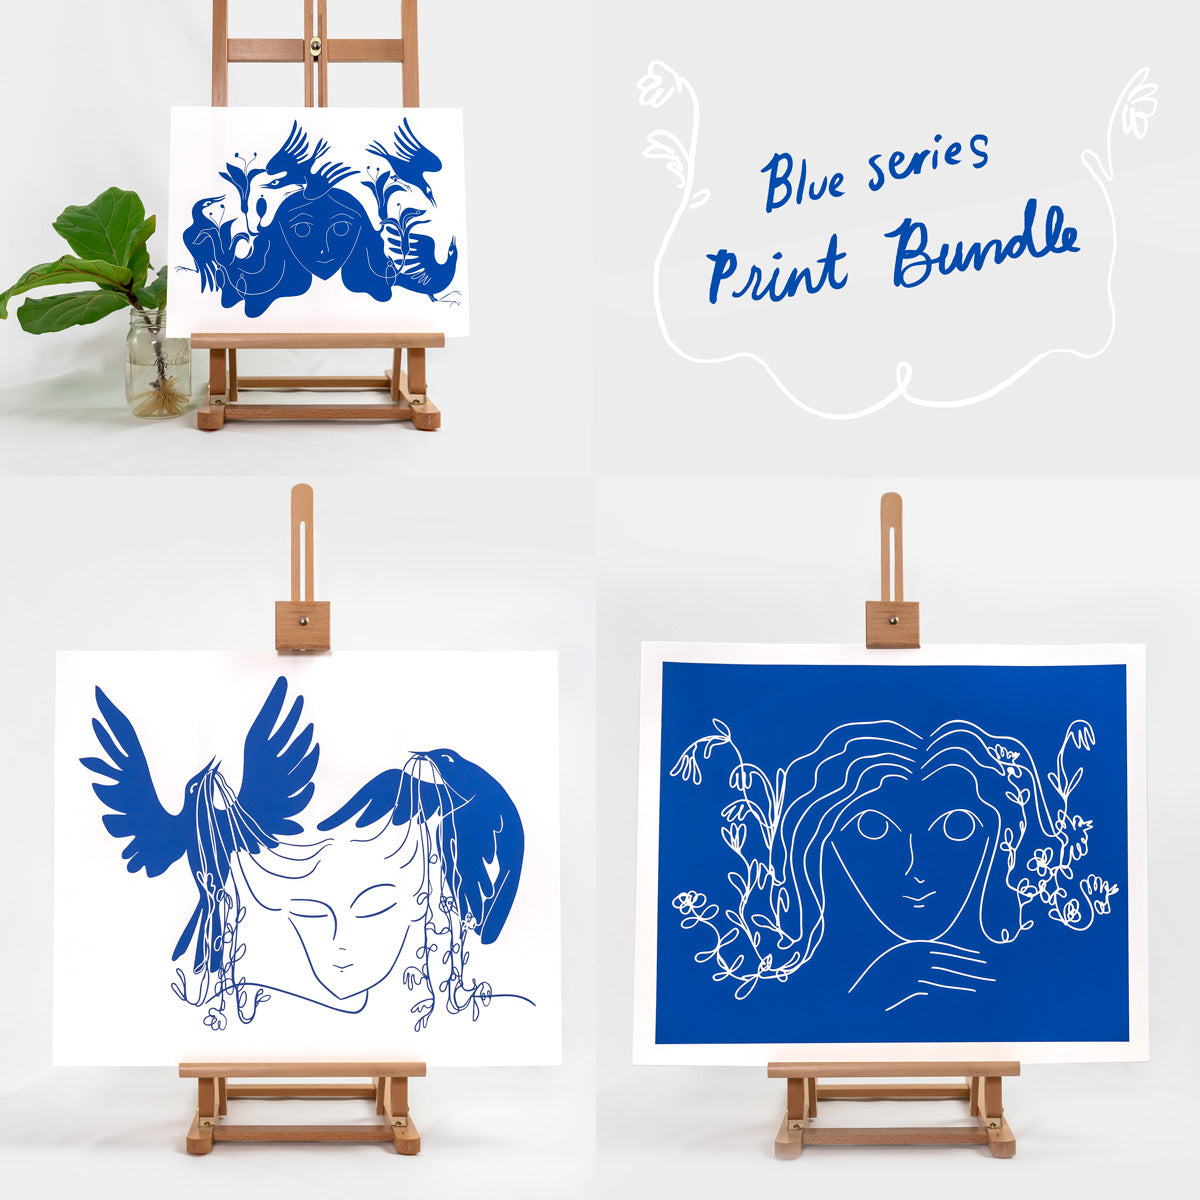 Blue Series Print Bundle